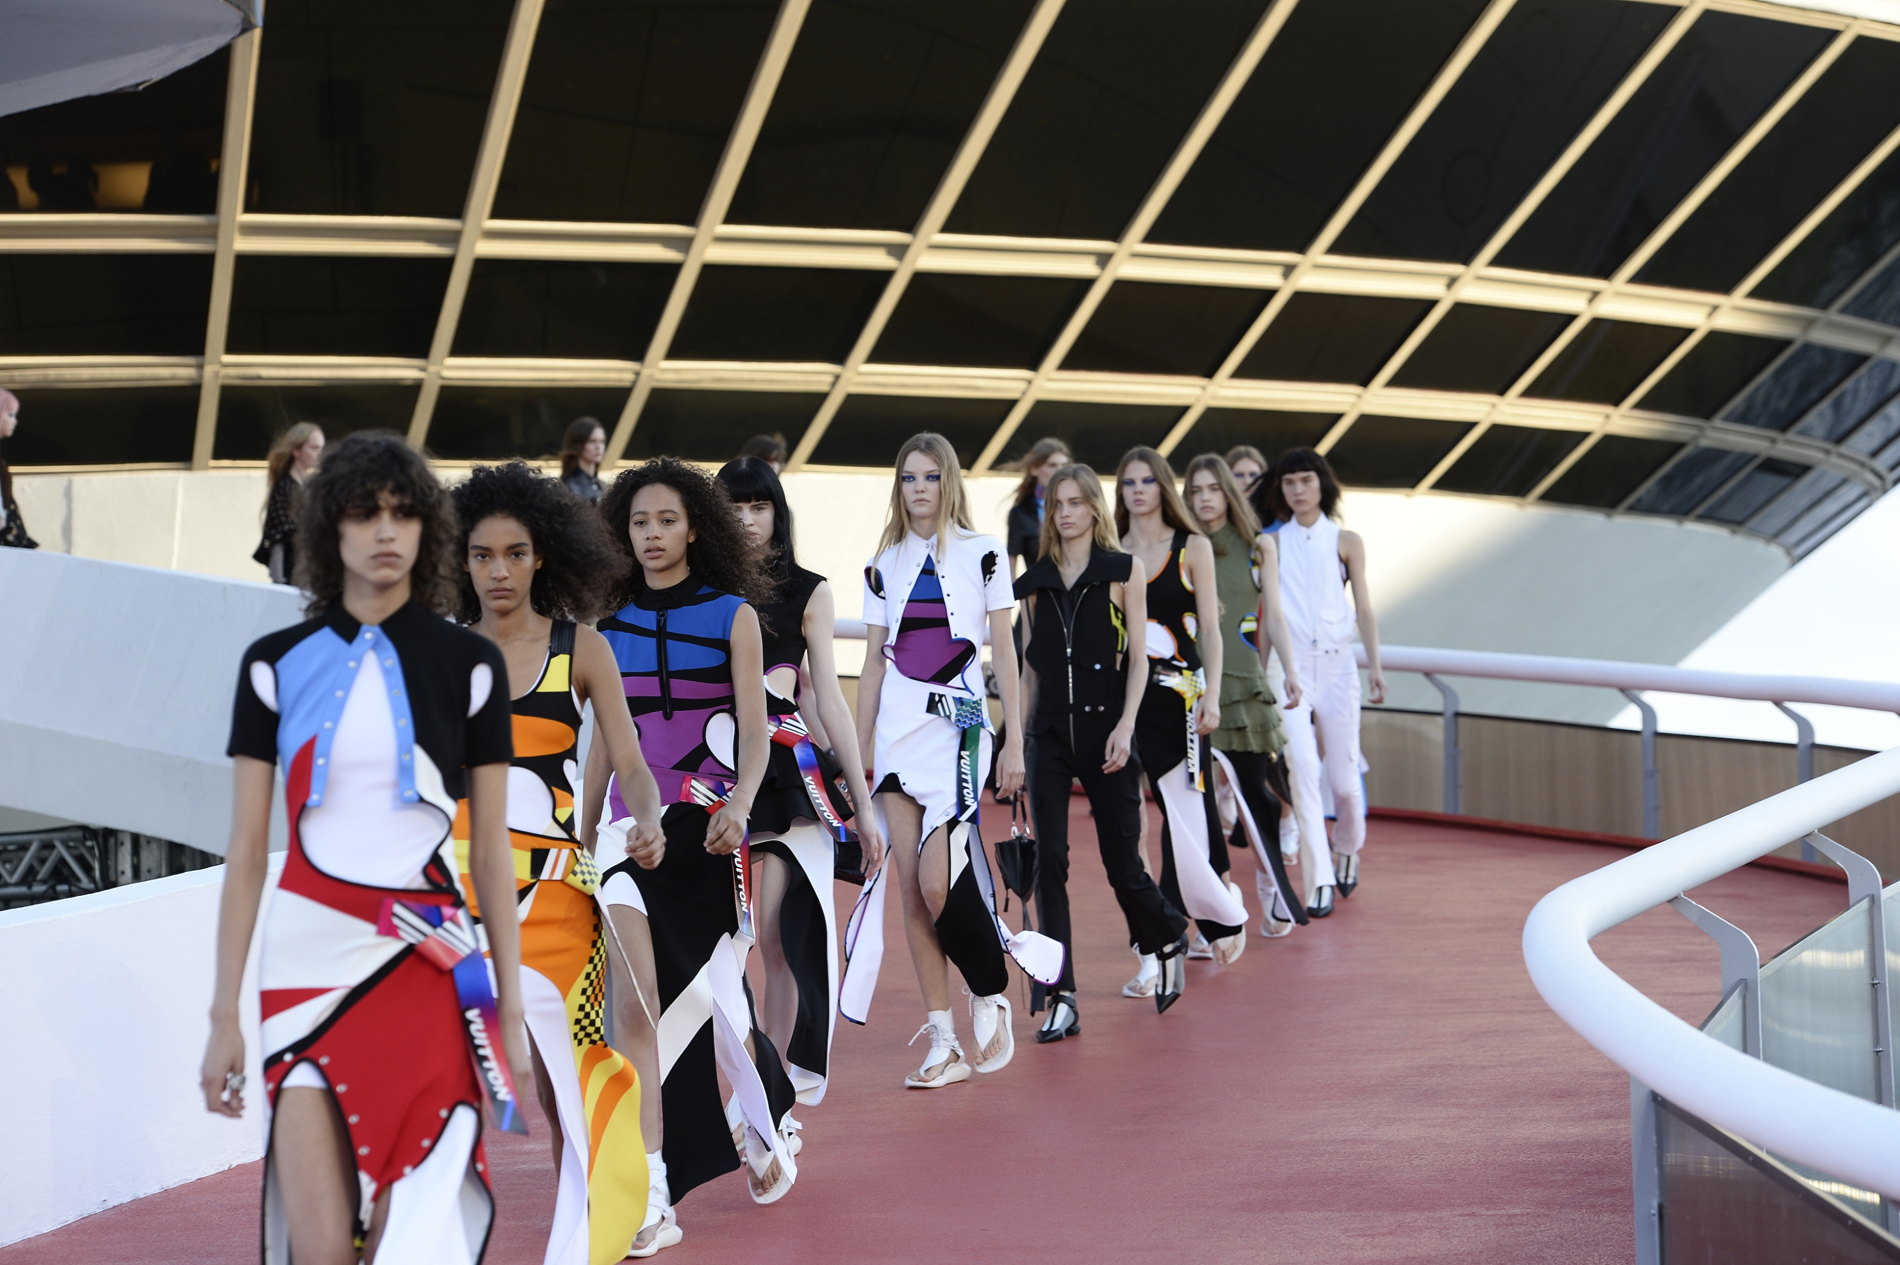 NITEROI, BRAZIL - MAY 28:  Models walk at Louis Vuitton 2017 Cruise Collection at MAC on May 28, 2016 in Niteroi, Brazil.  (Photo by Fernanda Calfat/Getty Images)